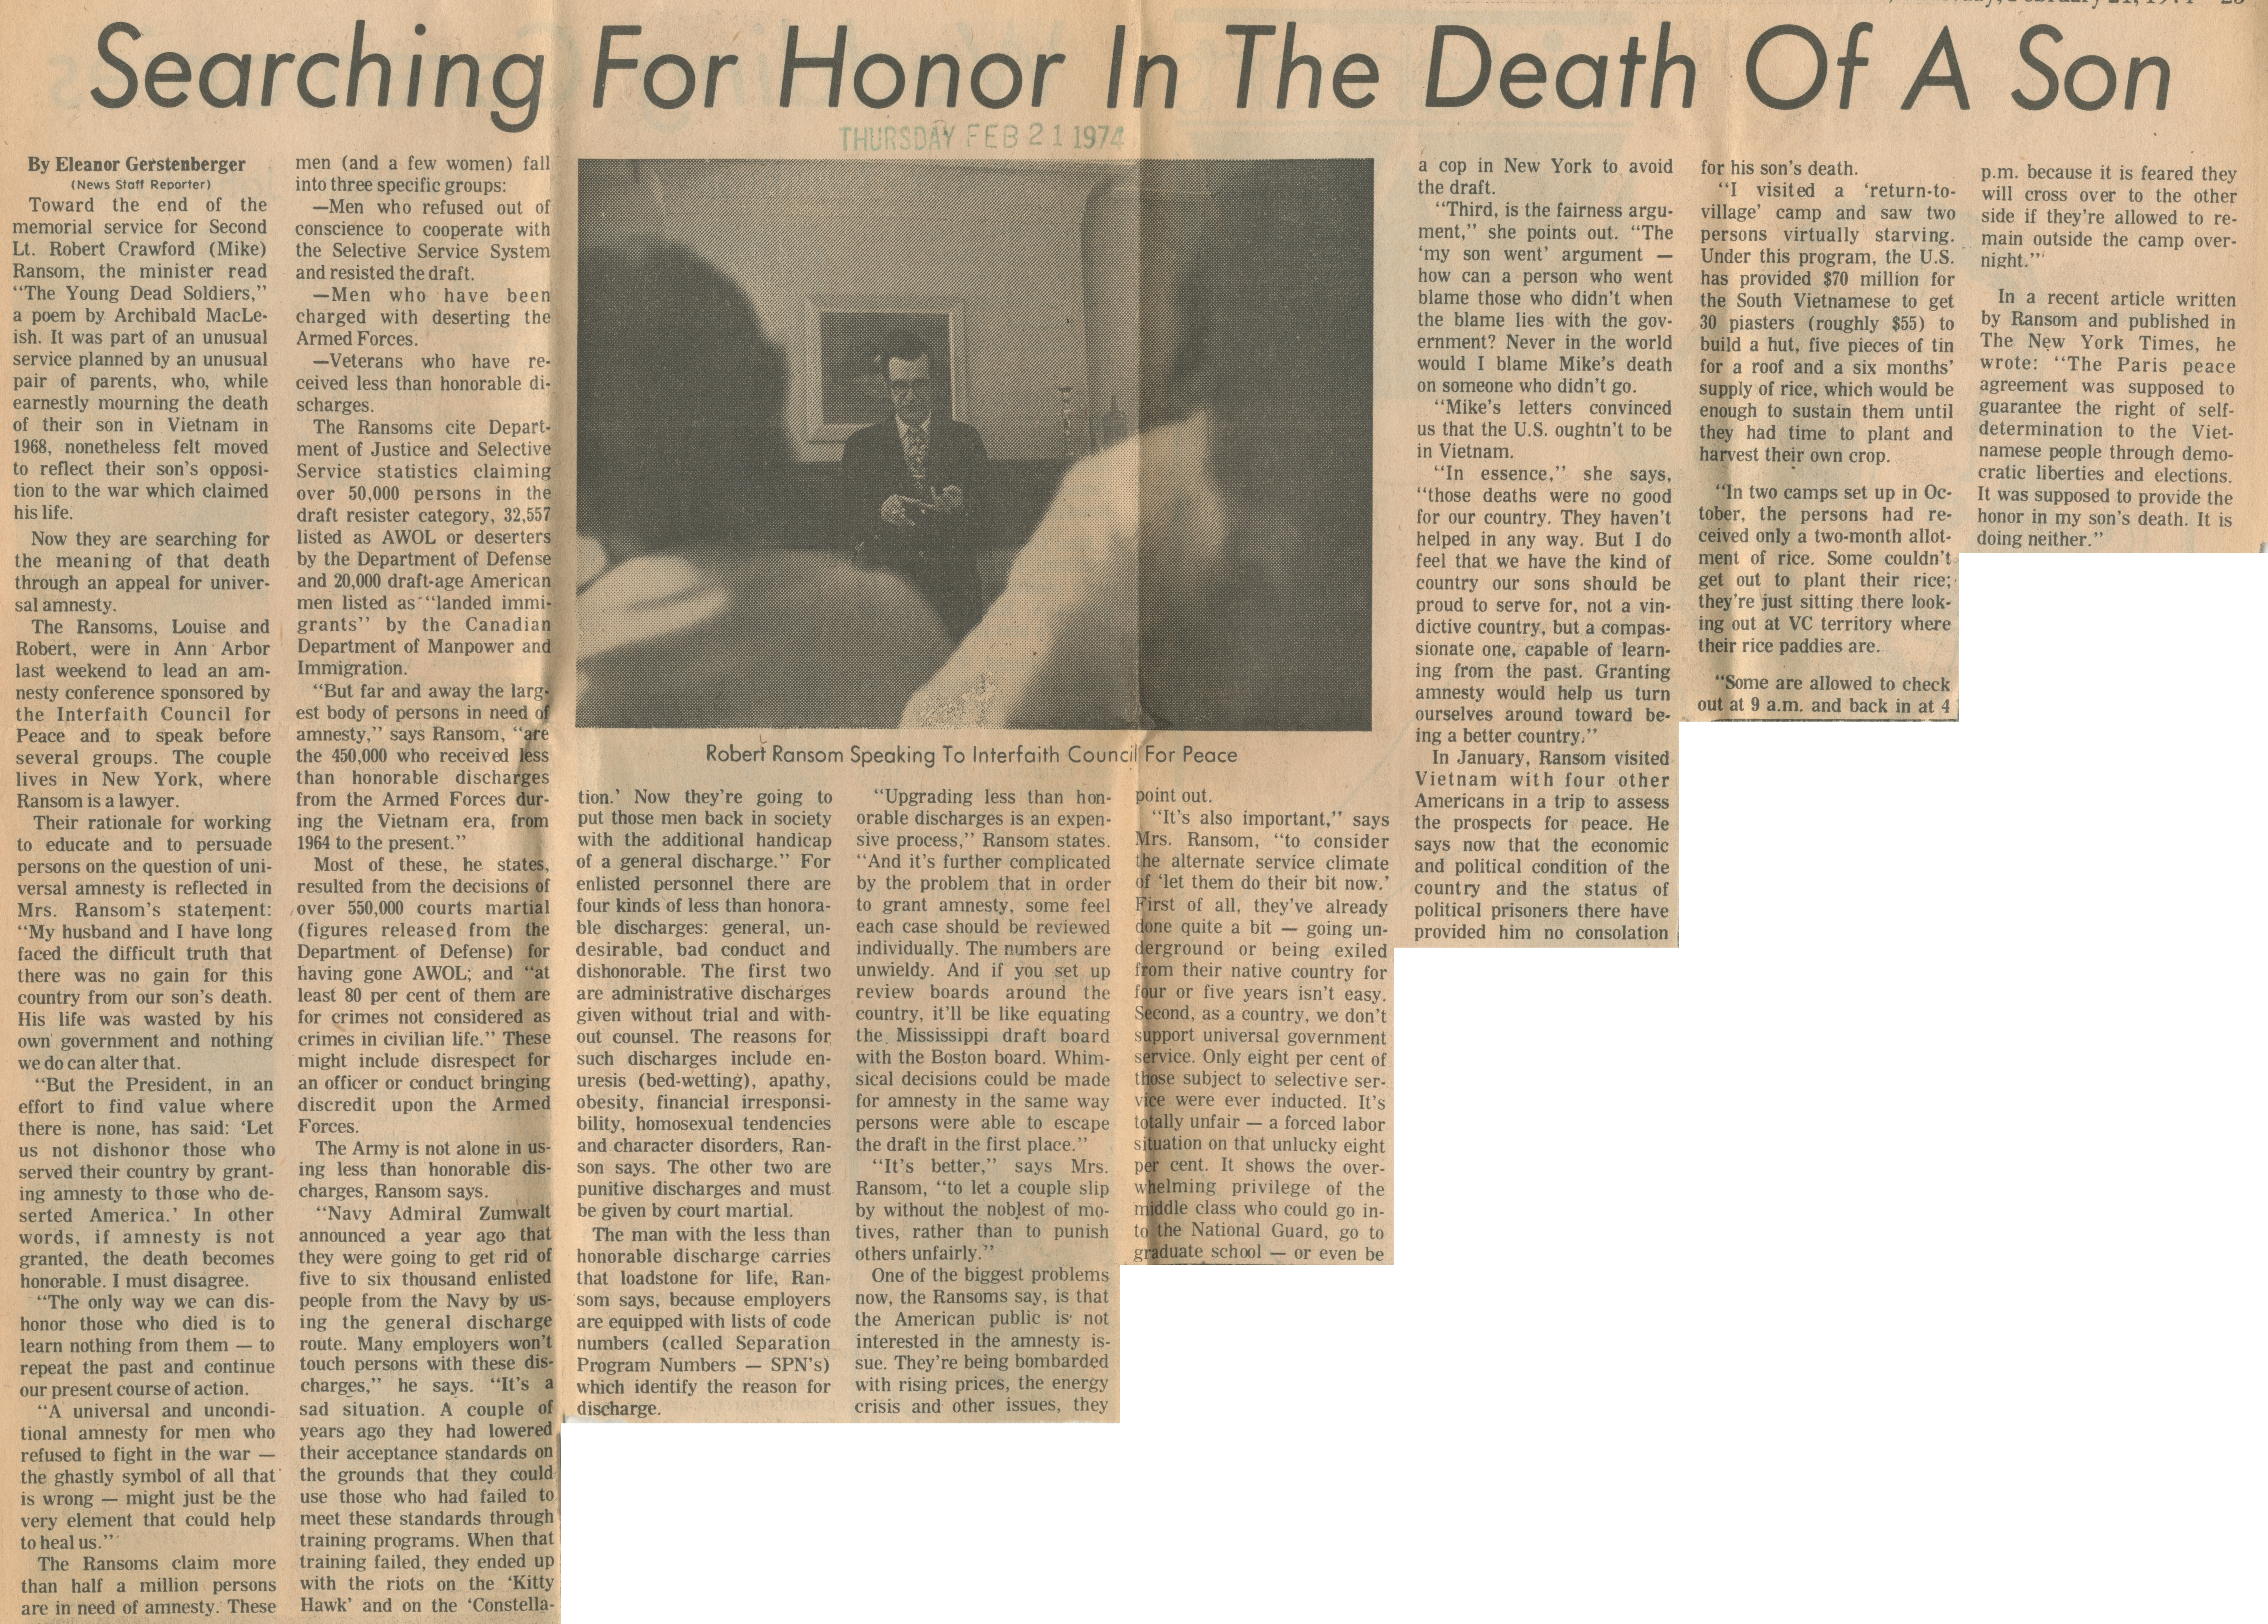 Searching For Honor In The Death Of A Son image